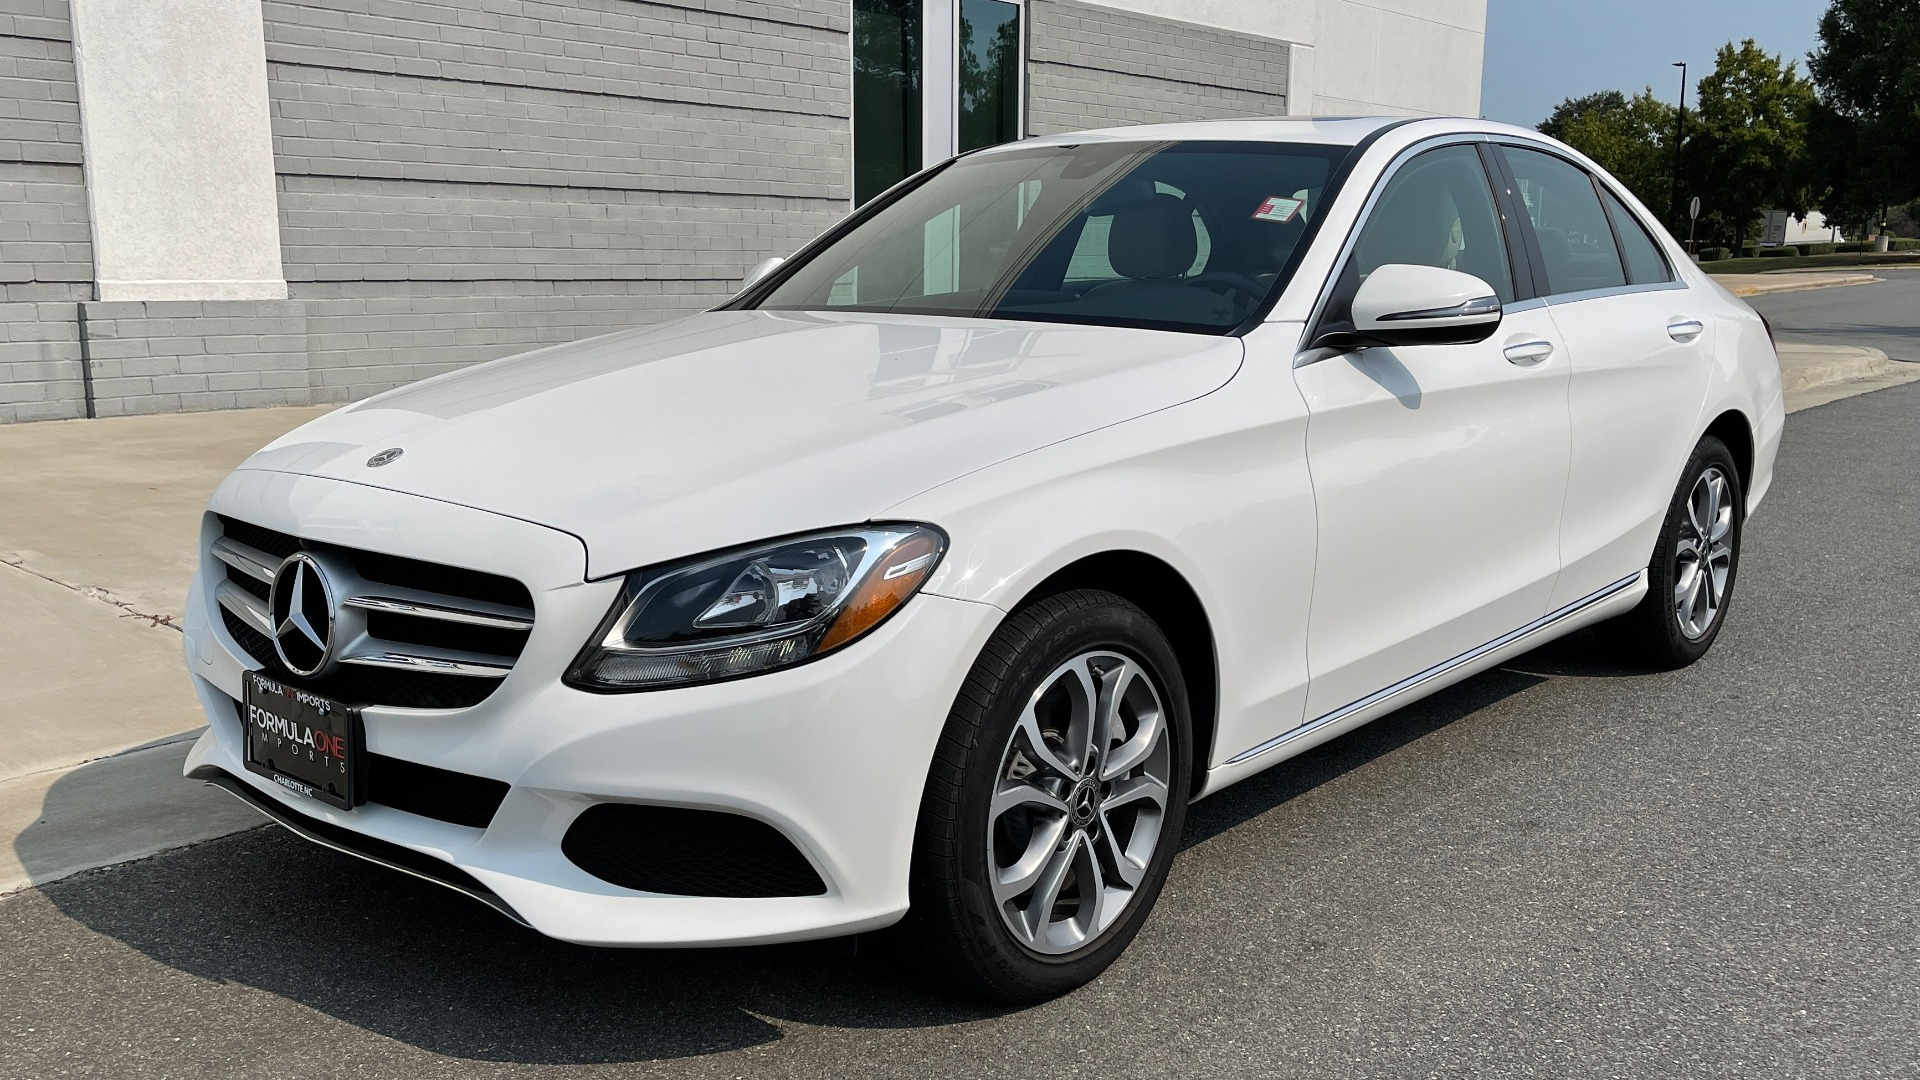 Used 2018 Mercedes-Benz C-Class C 300 4MATIC / PREMIUM / BURMESTER / HTD STS / SUNROOF / REARVIEW for sale $33,995 at Formula Imports in Charlotte NC 28227 3